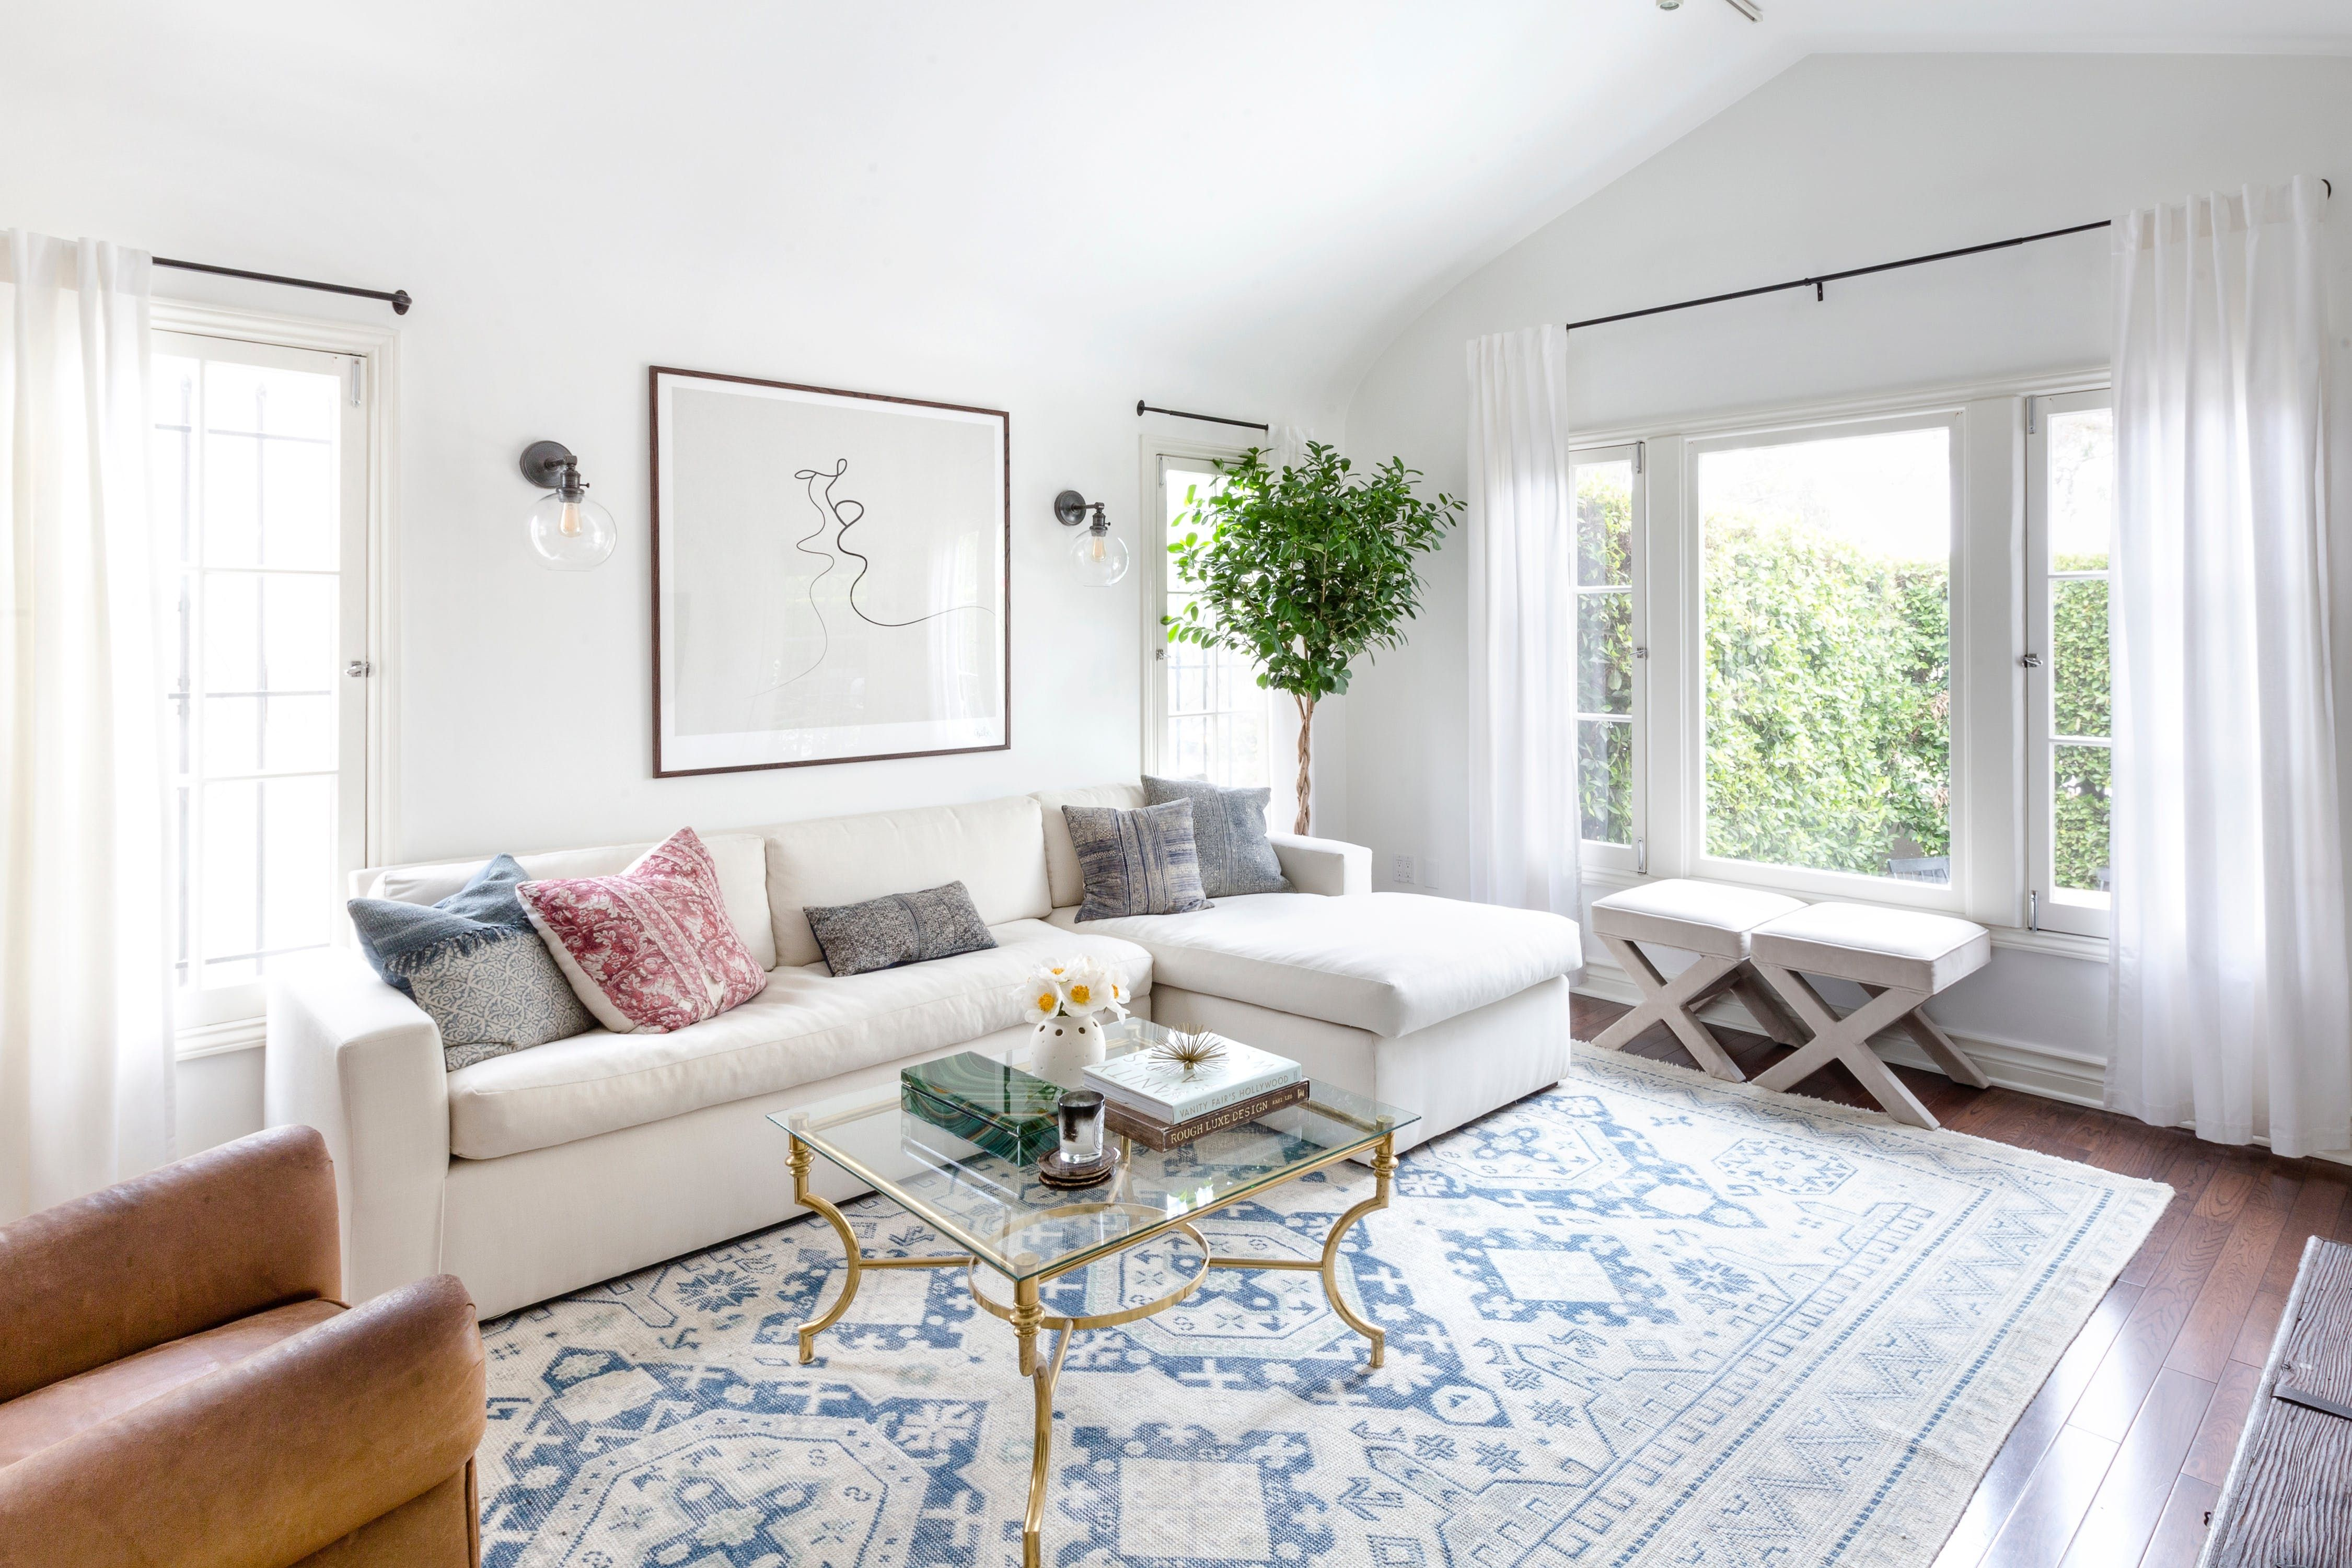 Tour a california cool home with parisian charm small spaces